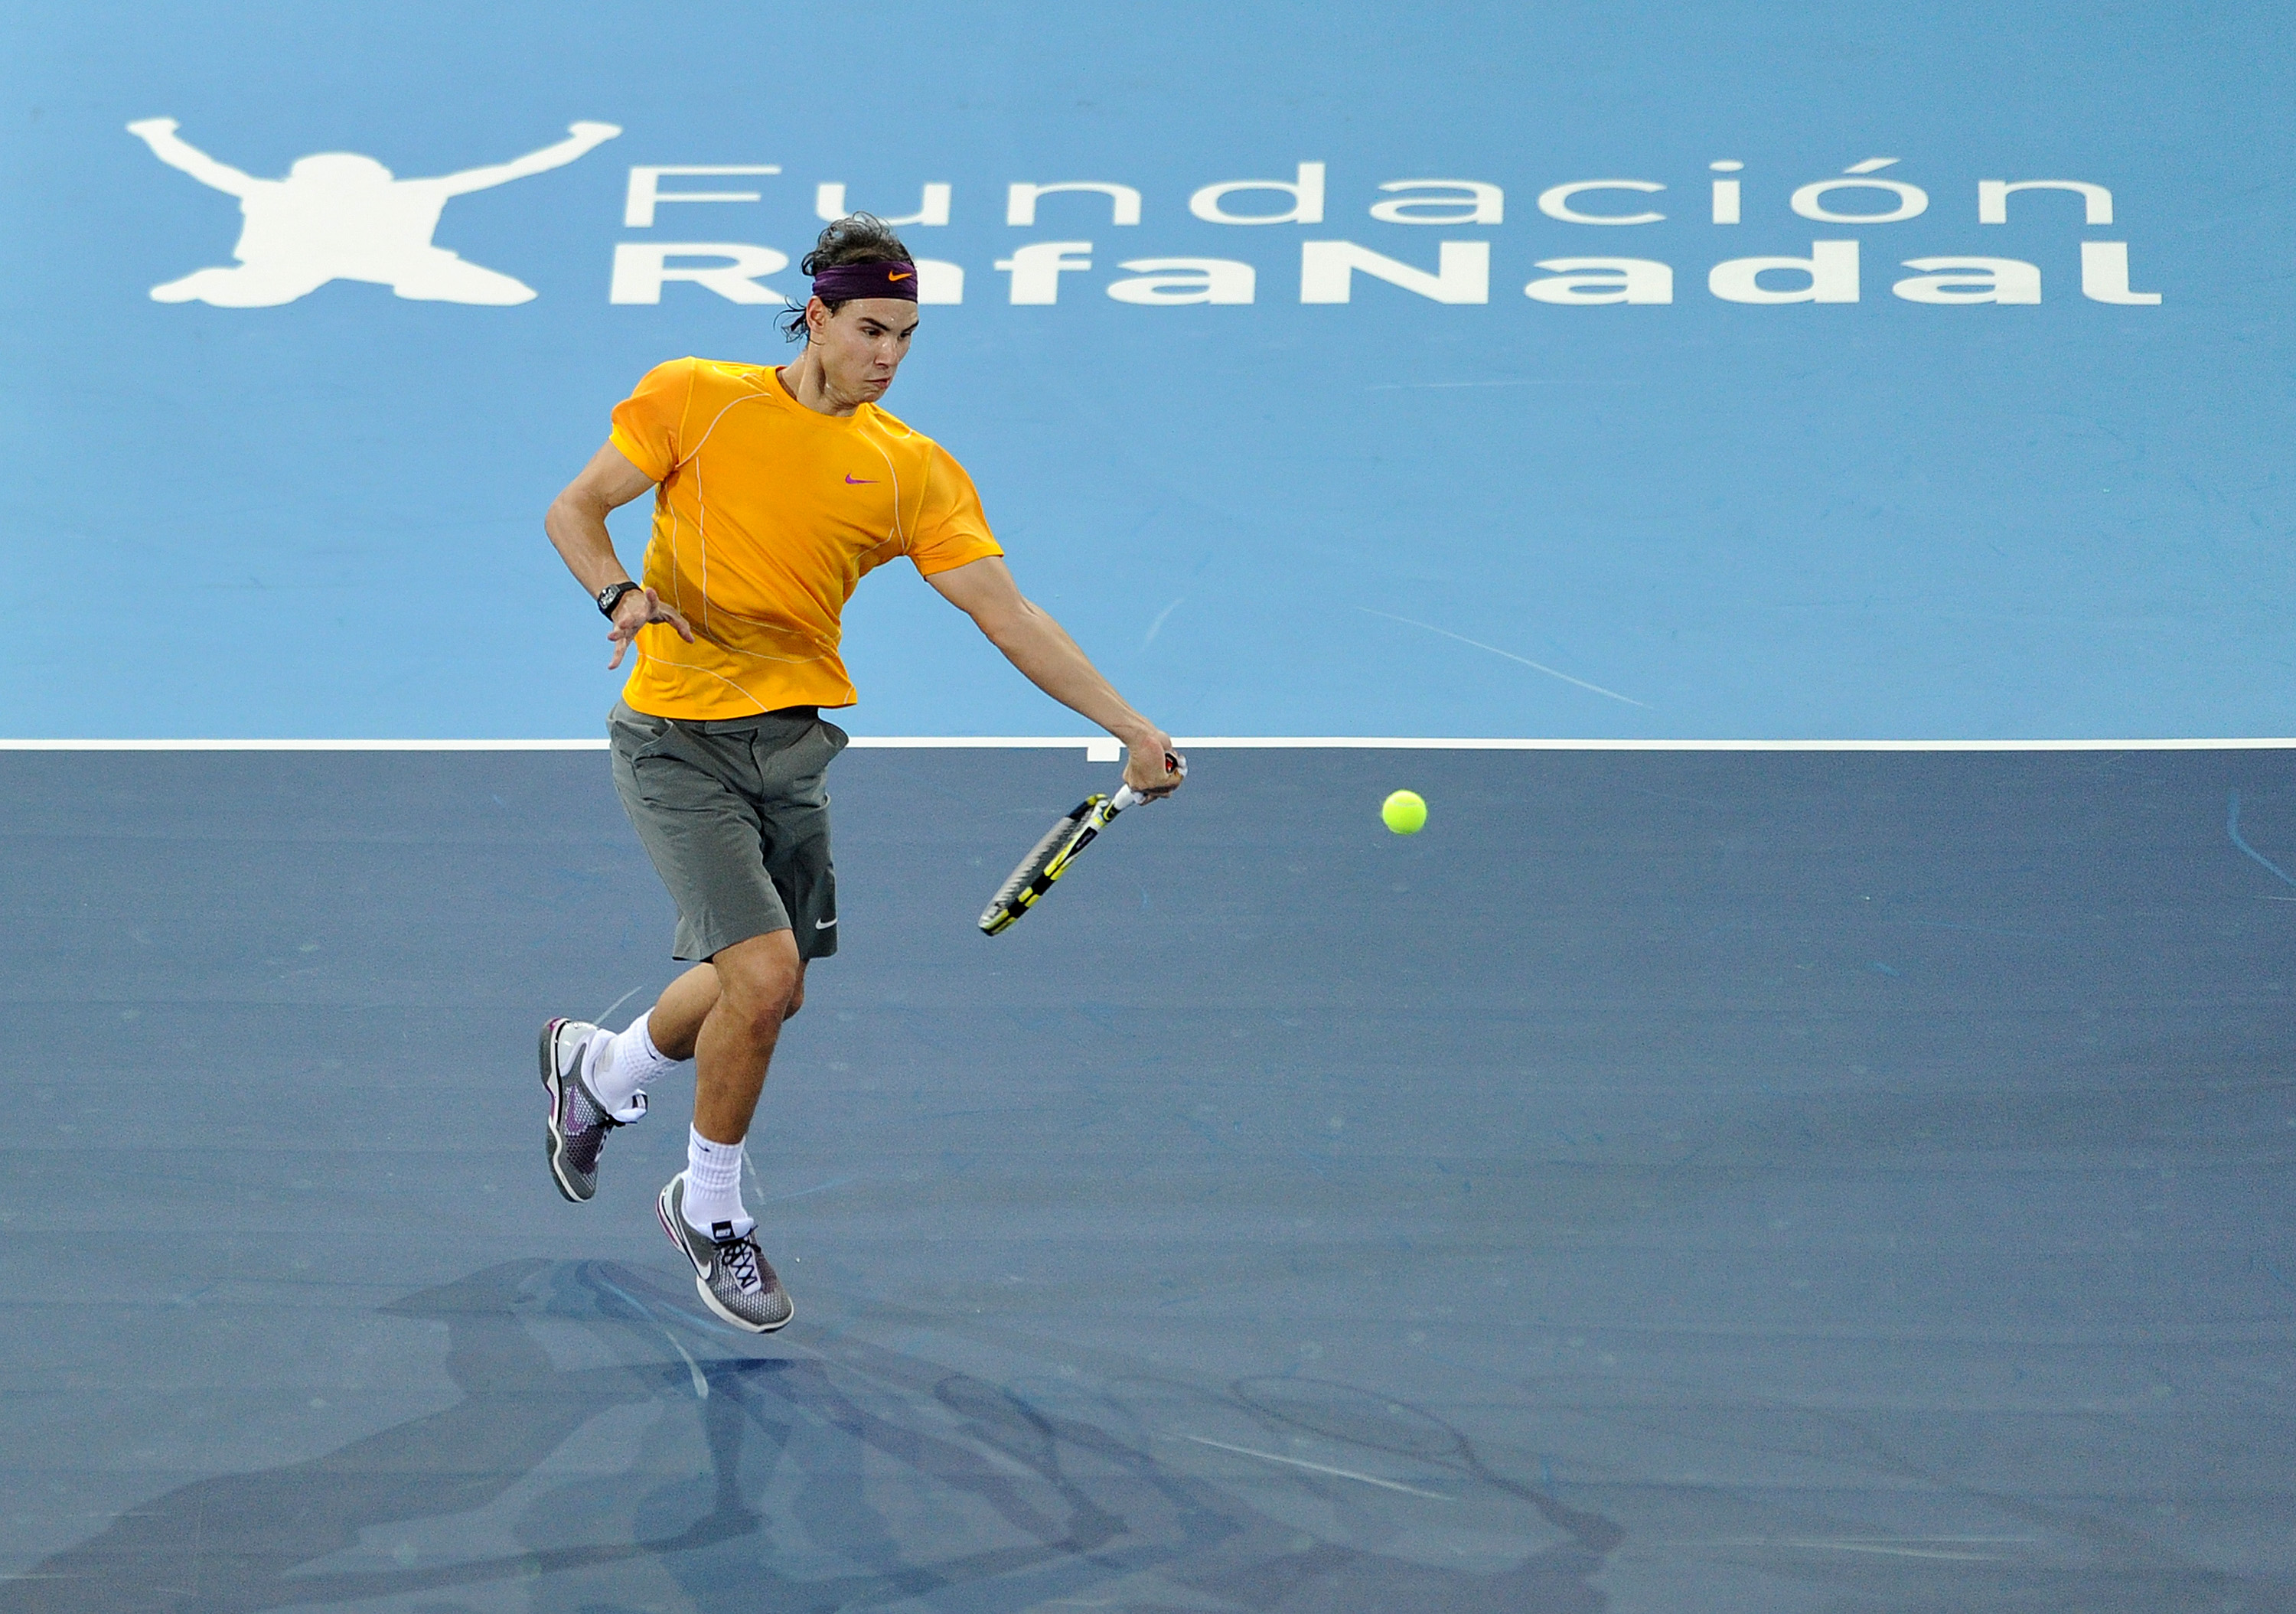 Nadal took part in two exhibition matches in December for Charity